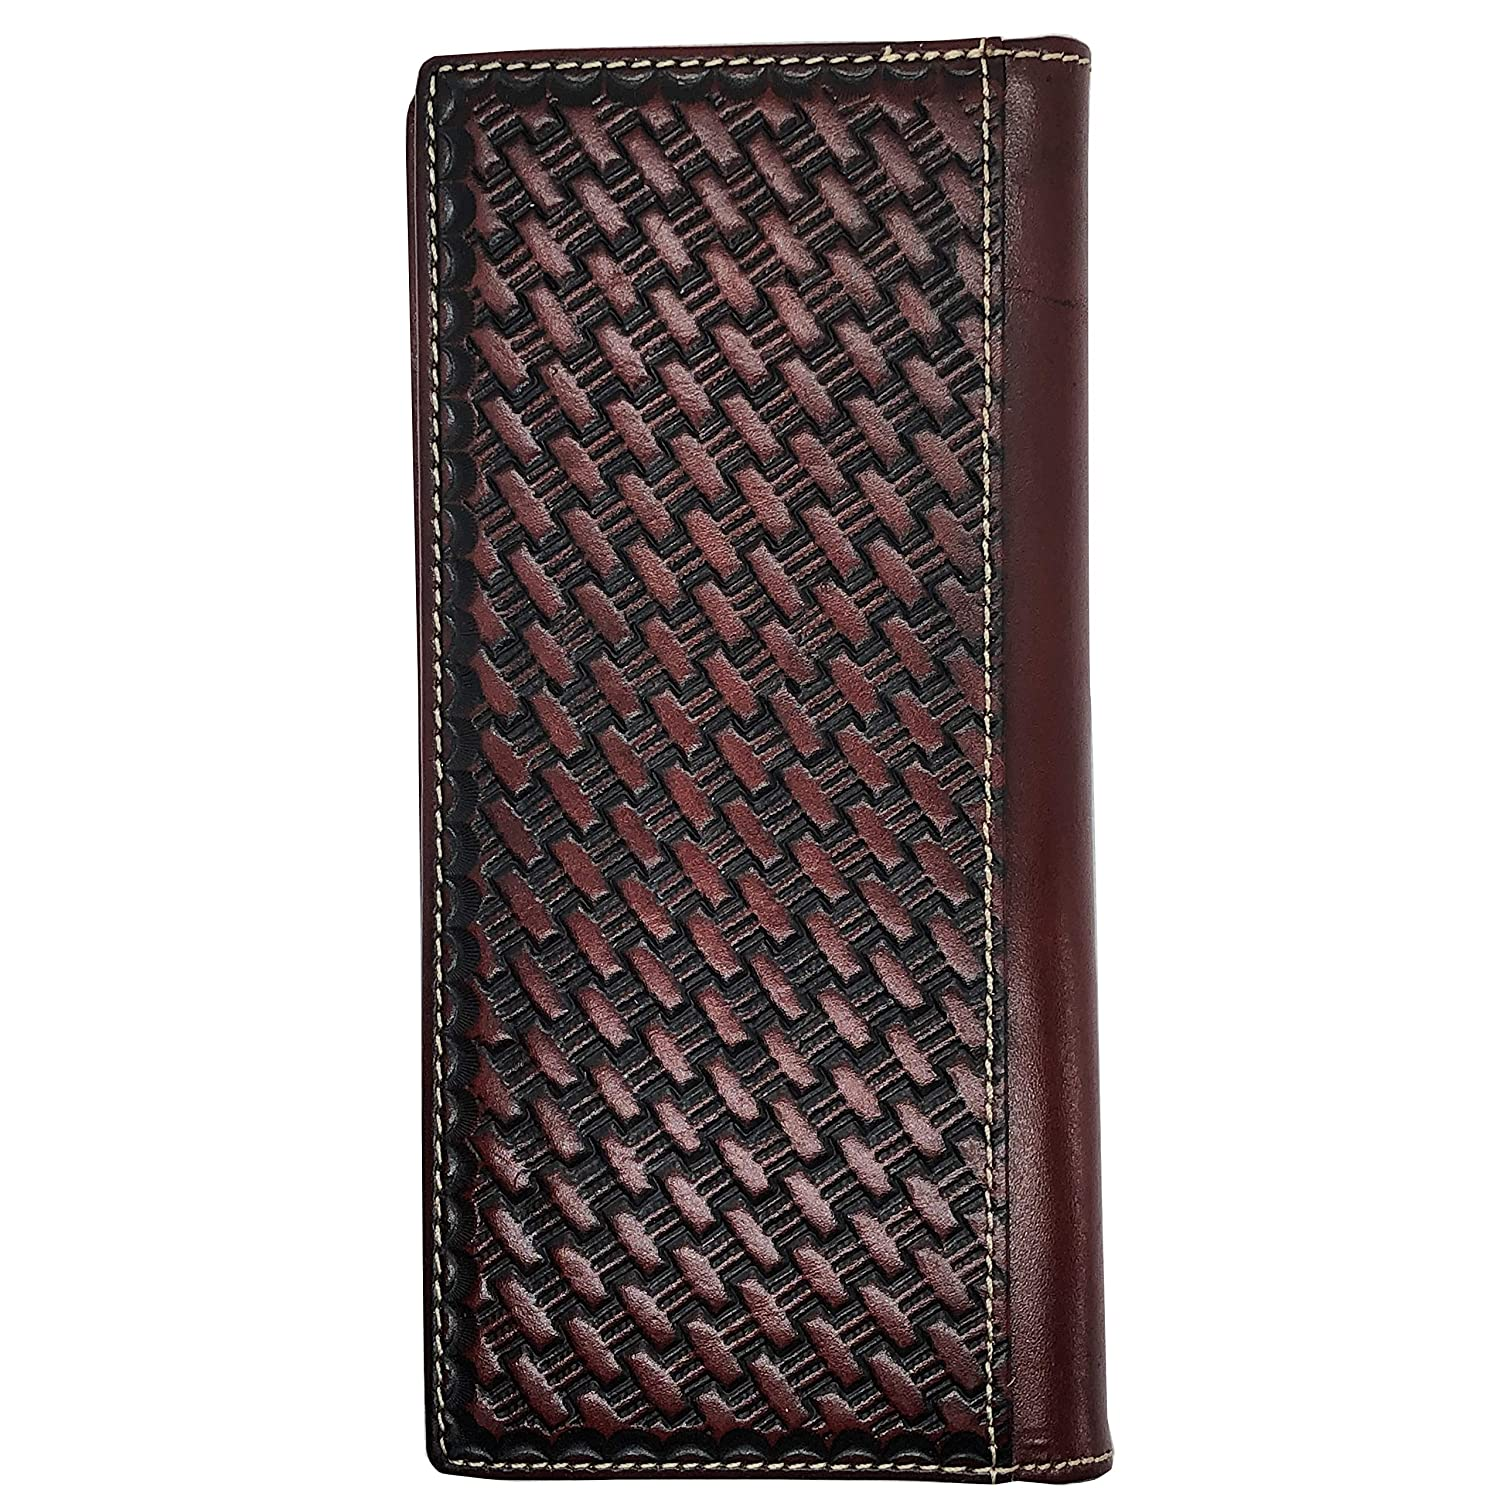 Amazon.com: Cartera de piel para hombre, estilo occidental ...